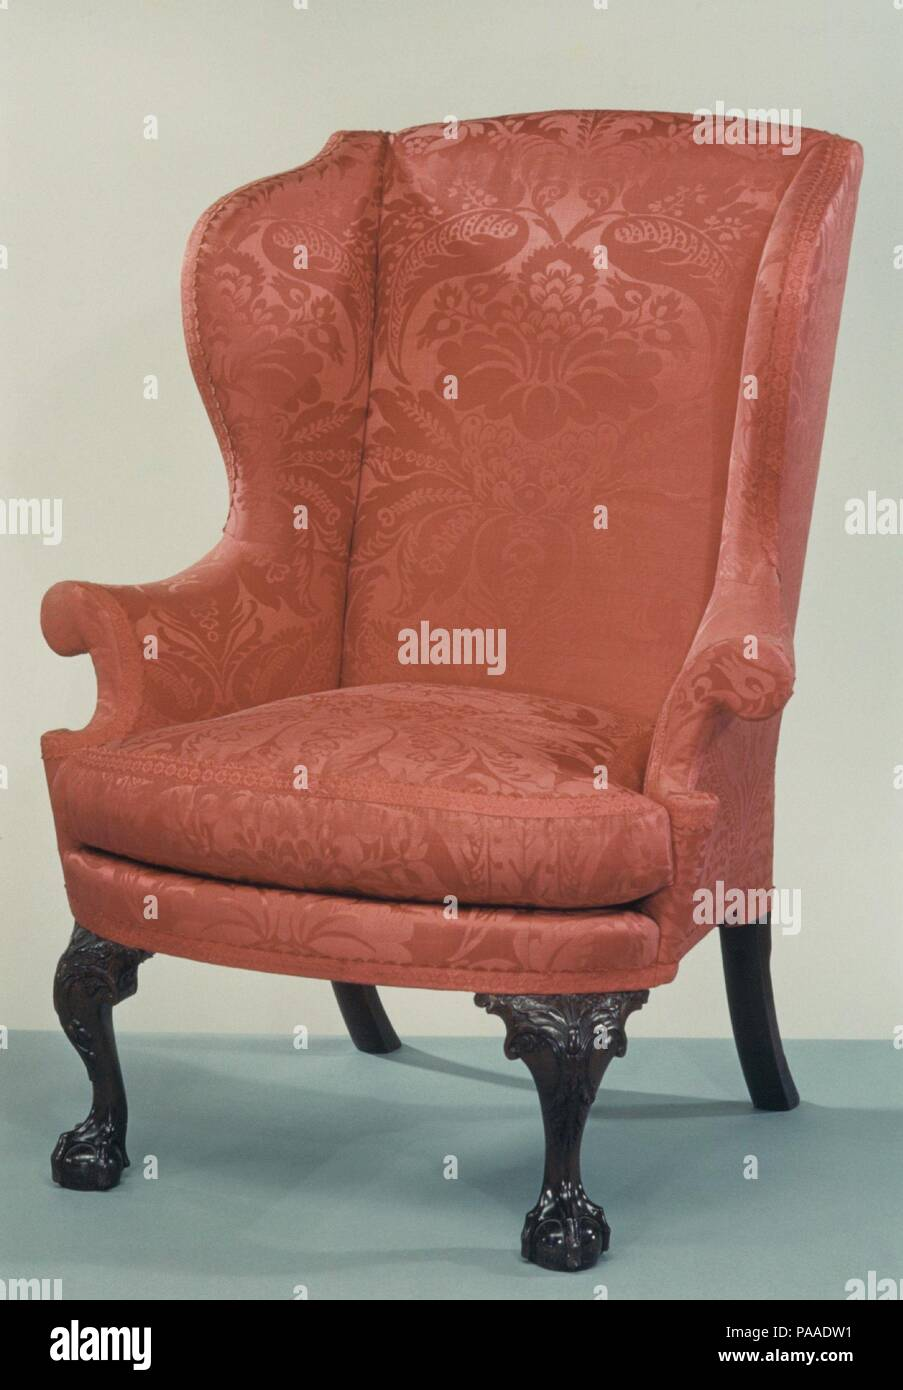 Easy Chair. Culture: American. Dimensions: 46 x 37 x 28 1/4 in. (116.8 x 94 x 71.8 cm). Date: 1760-90.  In the eighteenth century, easy chairs (often called 'wing chairs' today) were usually found in bedrooms for the use of the aged or infirm. Thick padding and soft down cushions provided comfort, and the wings gave protection from drafts. This example, with its curved front seat rail and flared arms terminating in C-scrolls, exhibits the classic Philadelphia form. Museum: Metropolitan Museum of Art, New York, USA. - Stock Image